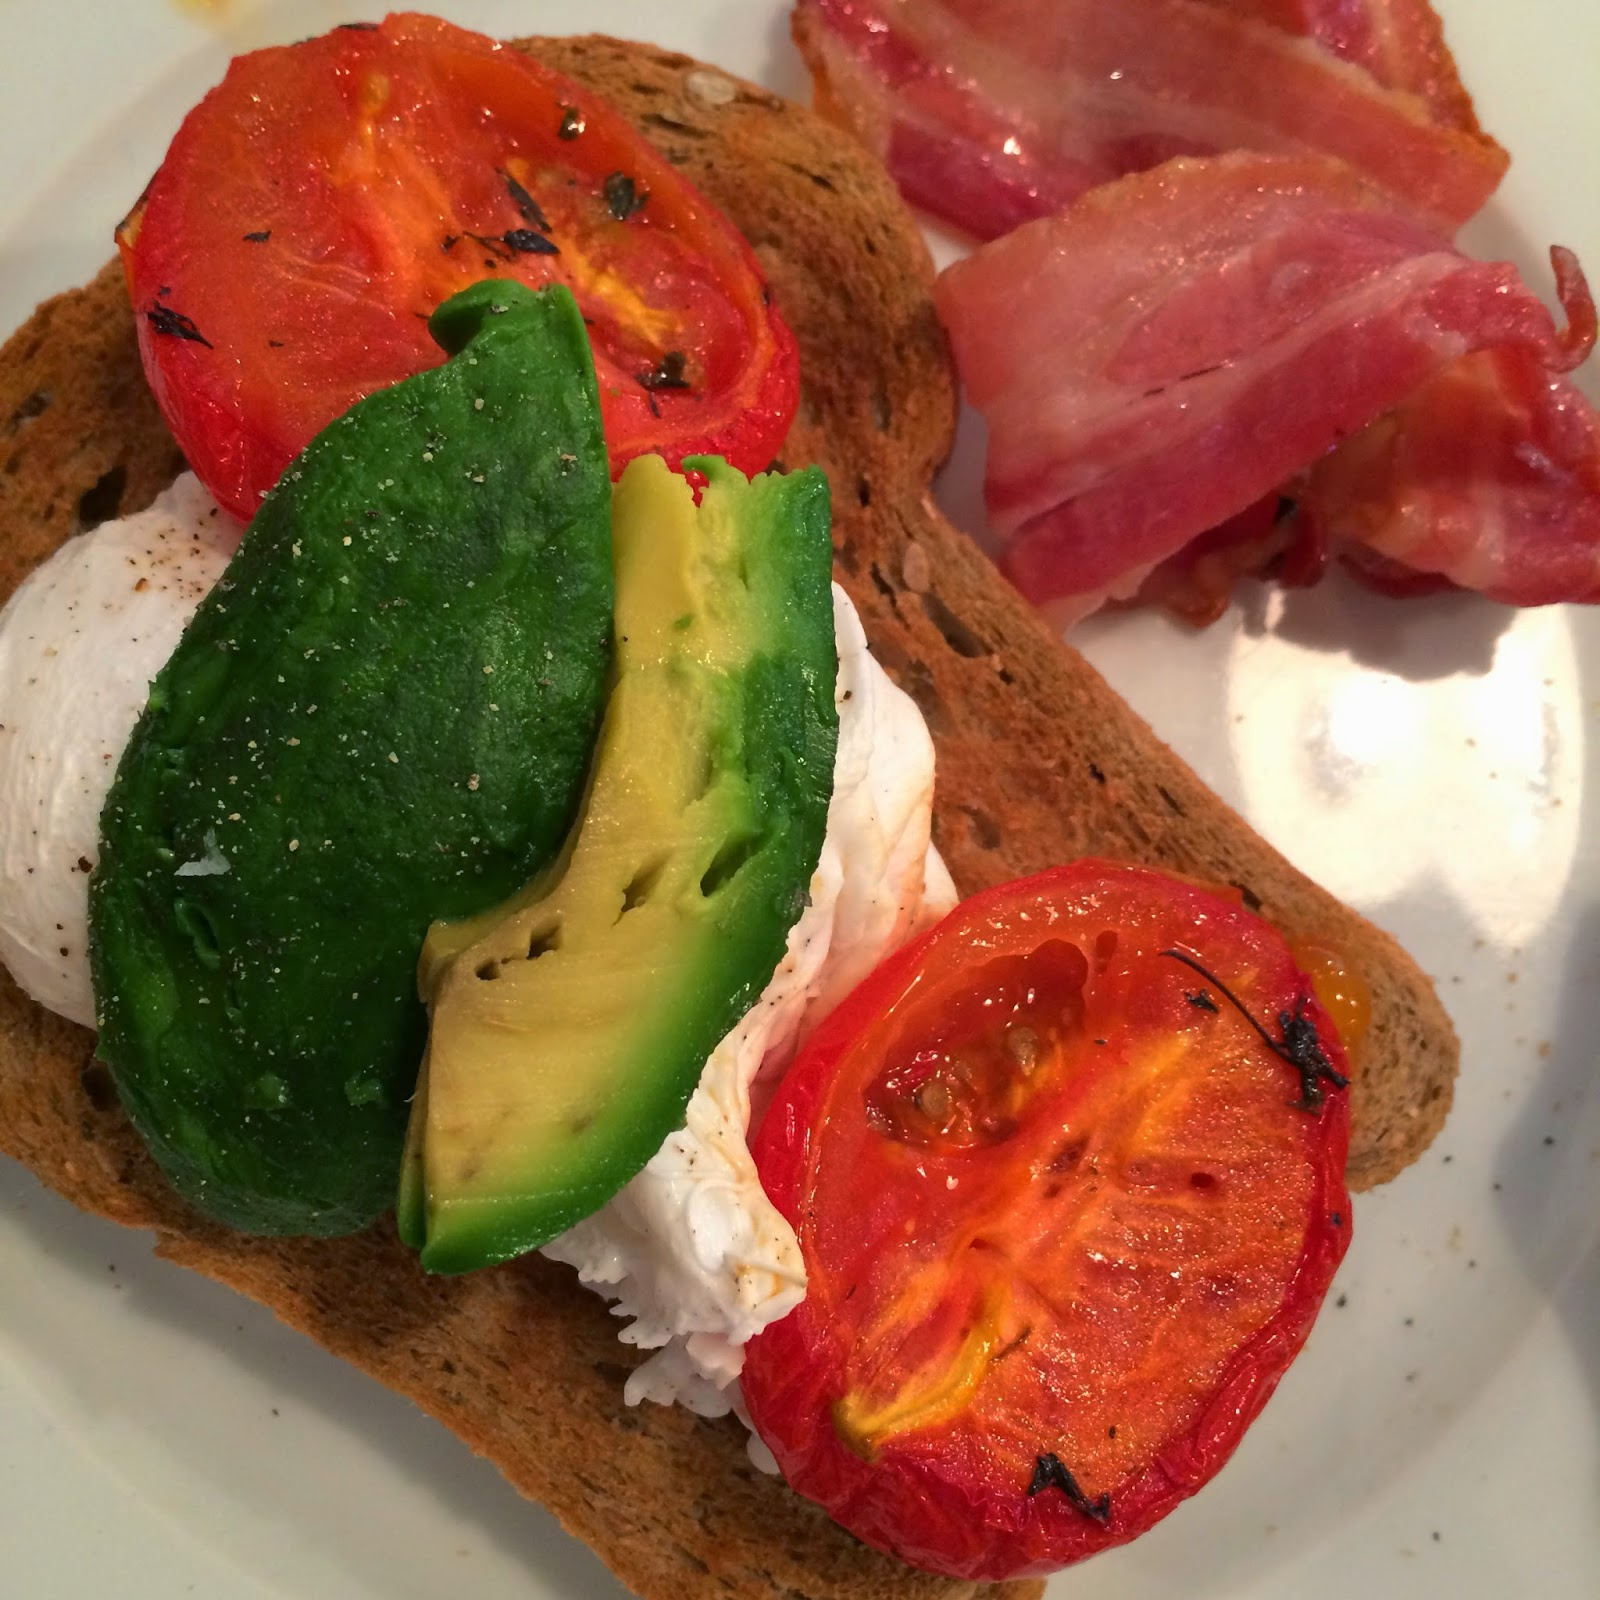 Tom's kitchen, toms kitchen london, poached eggs, avocado, breakfast, brunch, london breakfast, healthy breakfast, bacon, breakfast bacon, tomatos